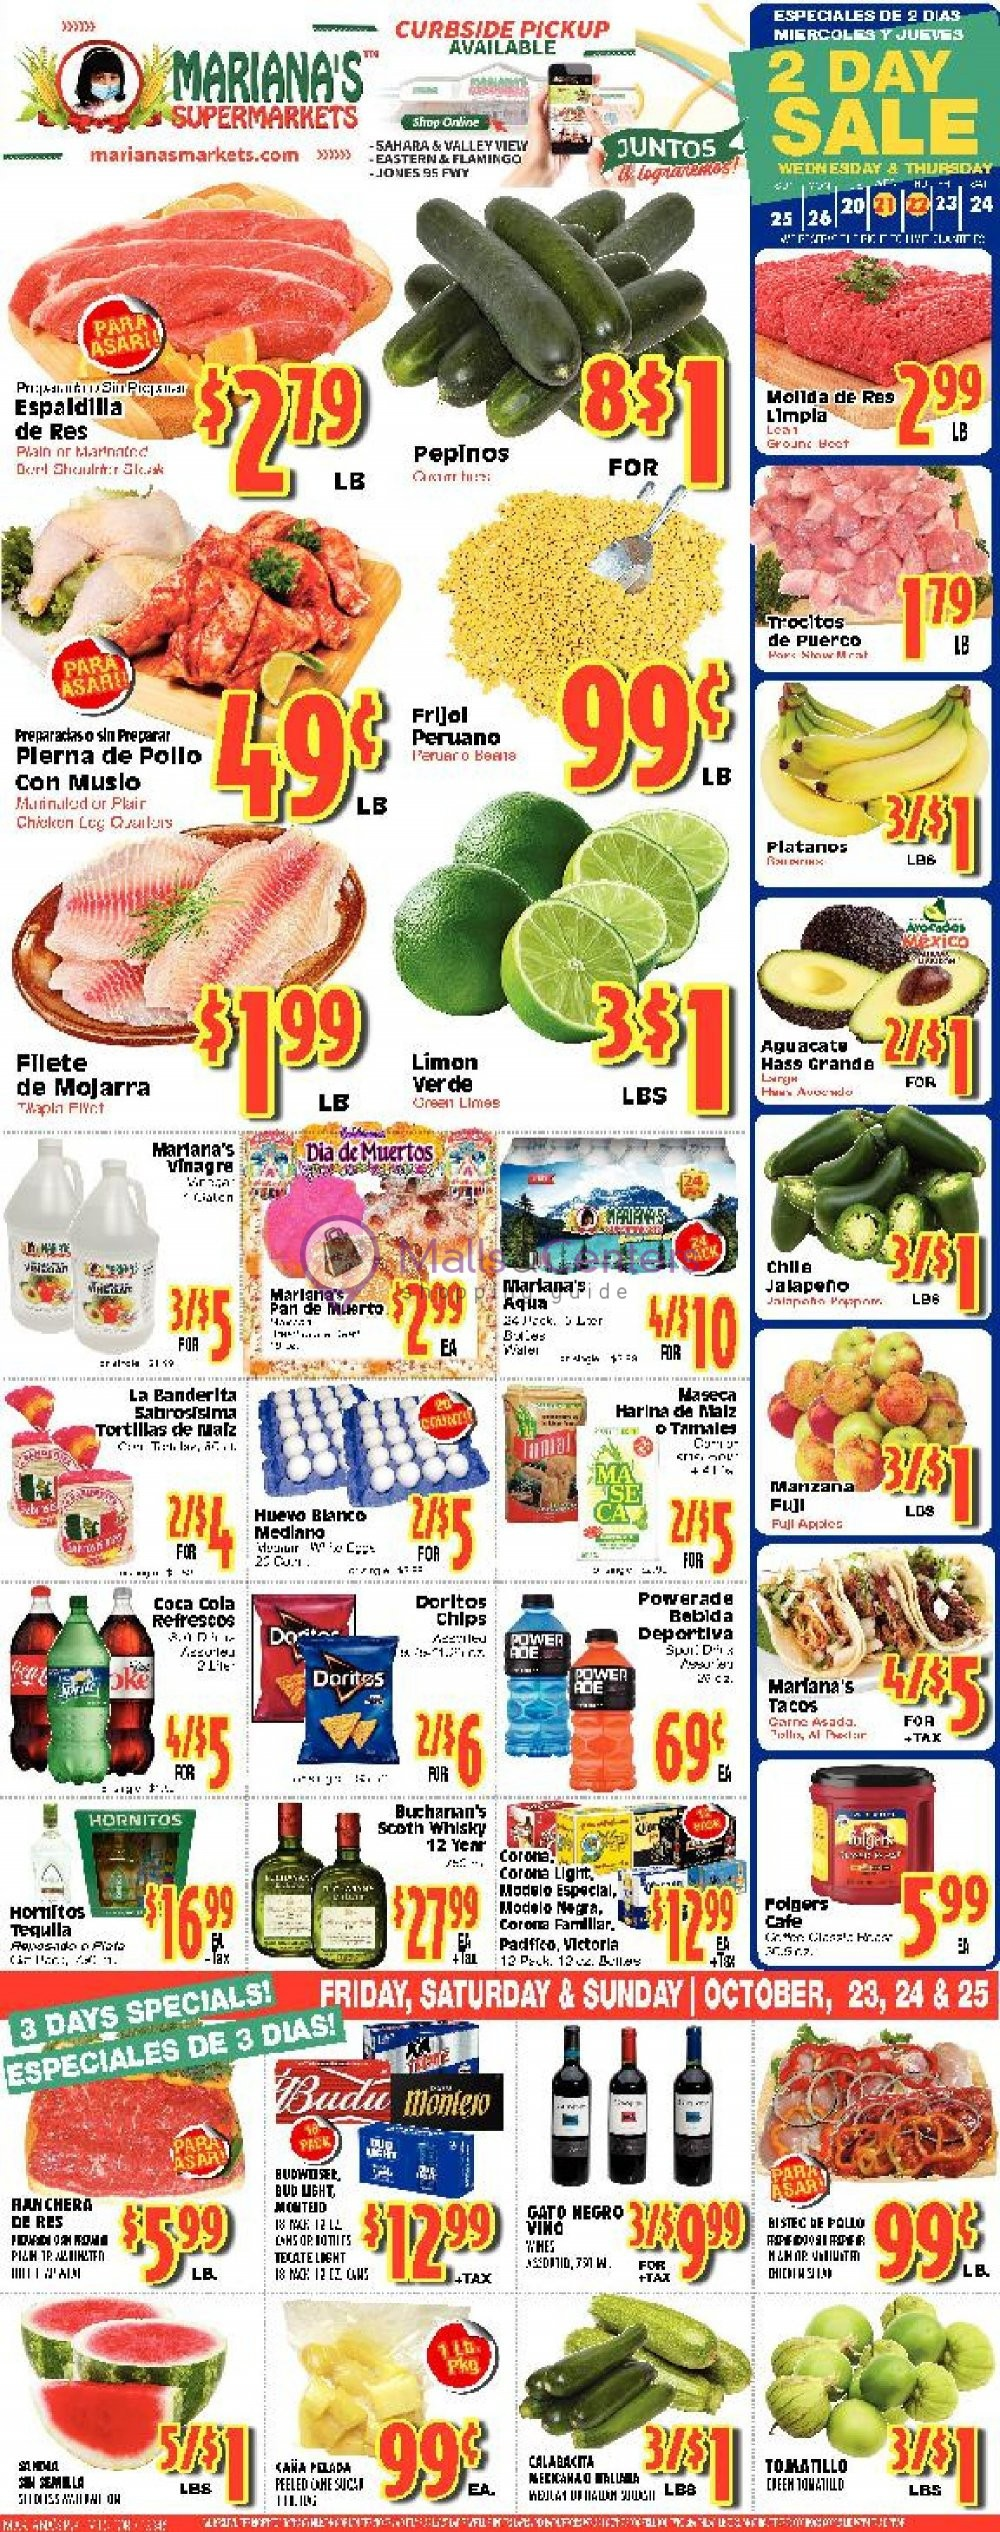 weekly ads Mariana's Supermarkets - page 1 - mallscenters.com